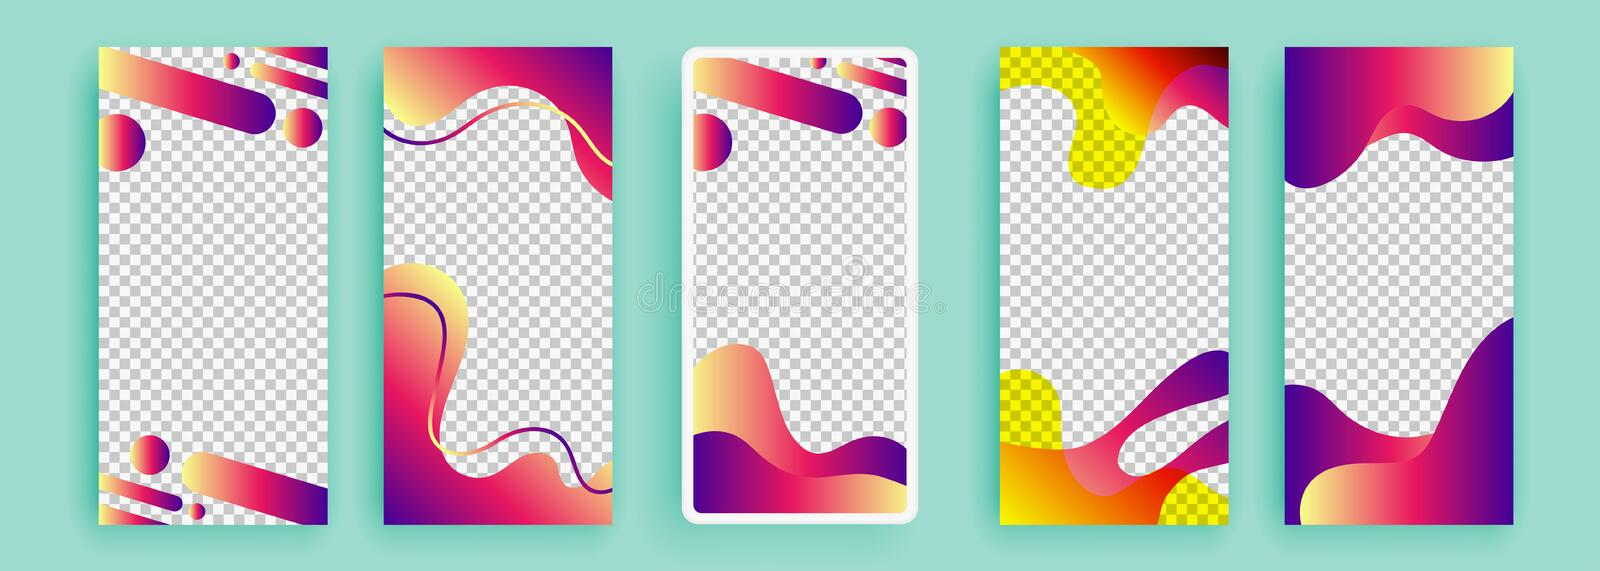 Trendy editable template for social networks stories, vector illustration. Design backgrounds for social media. Trendy editable template for social networks stock illustration